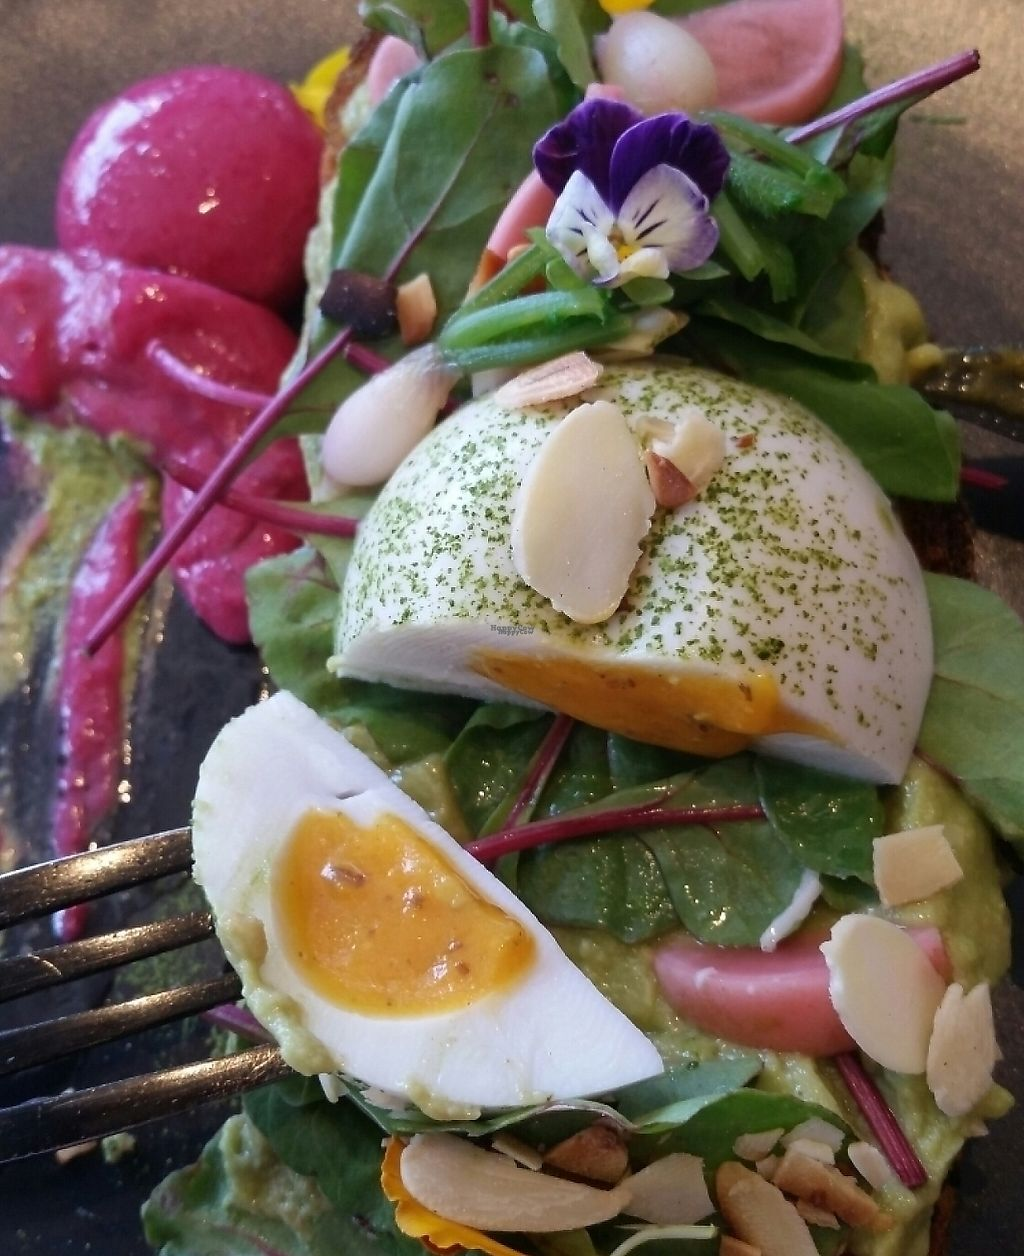 """Photo of Matcha Mylkbar  by <a href=""""/members/profile/Barolli"""">Barolli</a> <br/>Lime, avo guac toast, almond, beetroot,  radish with poached vegan egg <br/> December 30, 2016  - <a href='/contact/abuse/image/71552/261949'>Report</a>"""